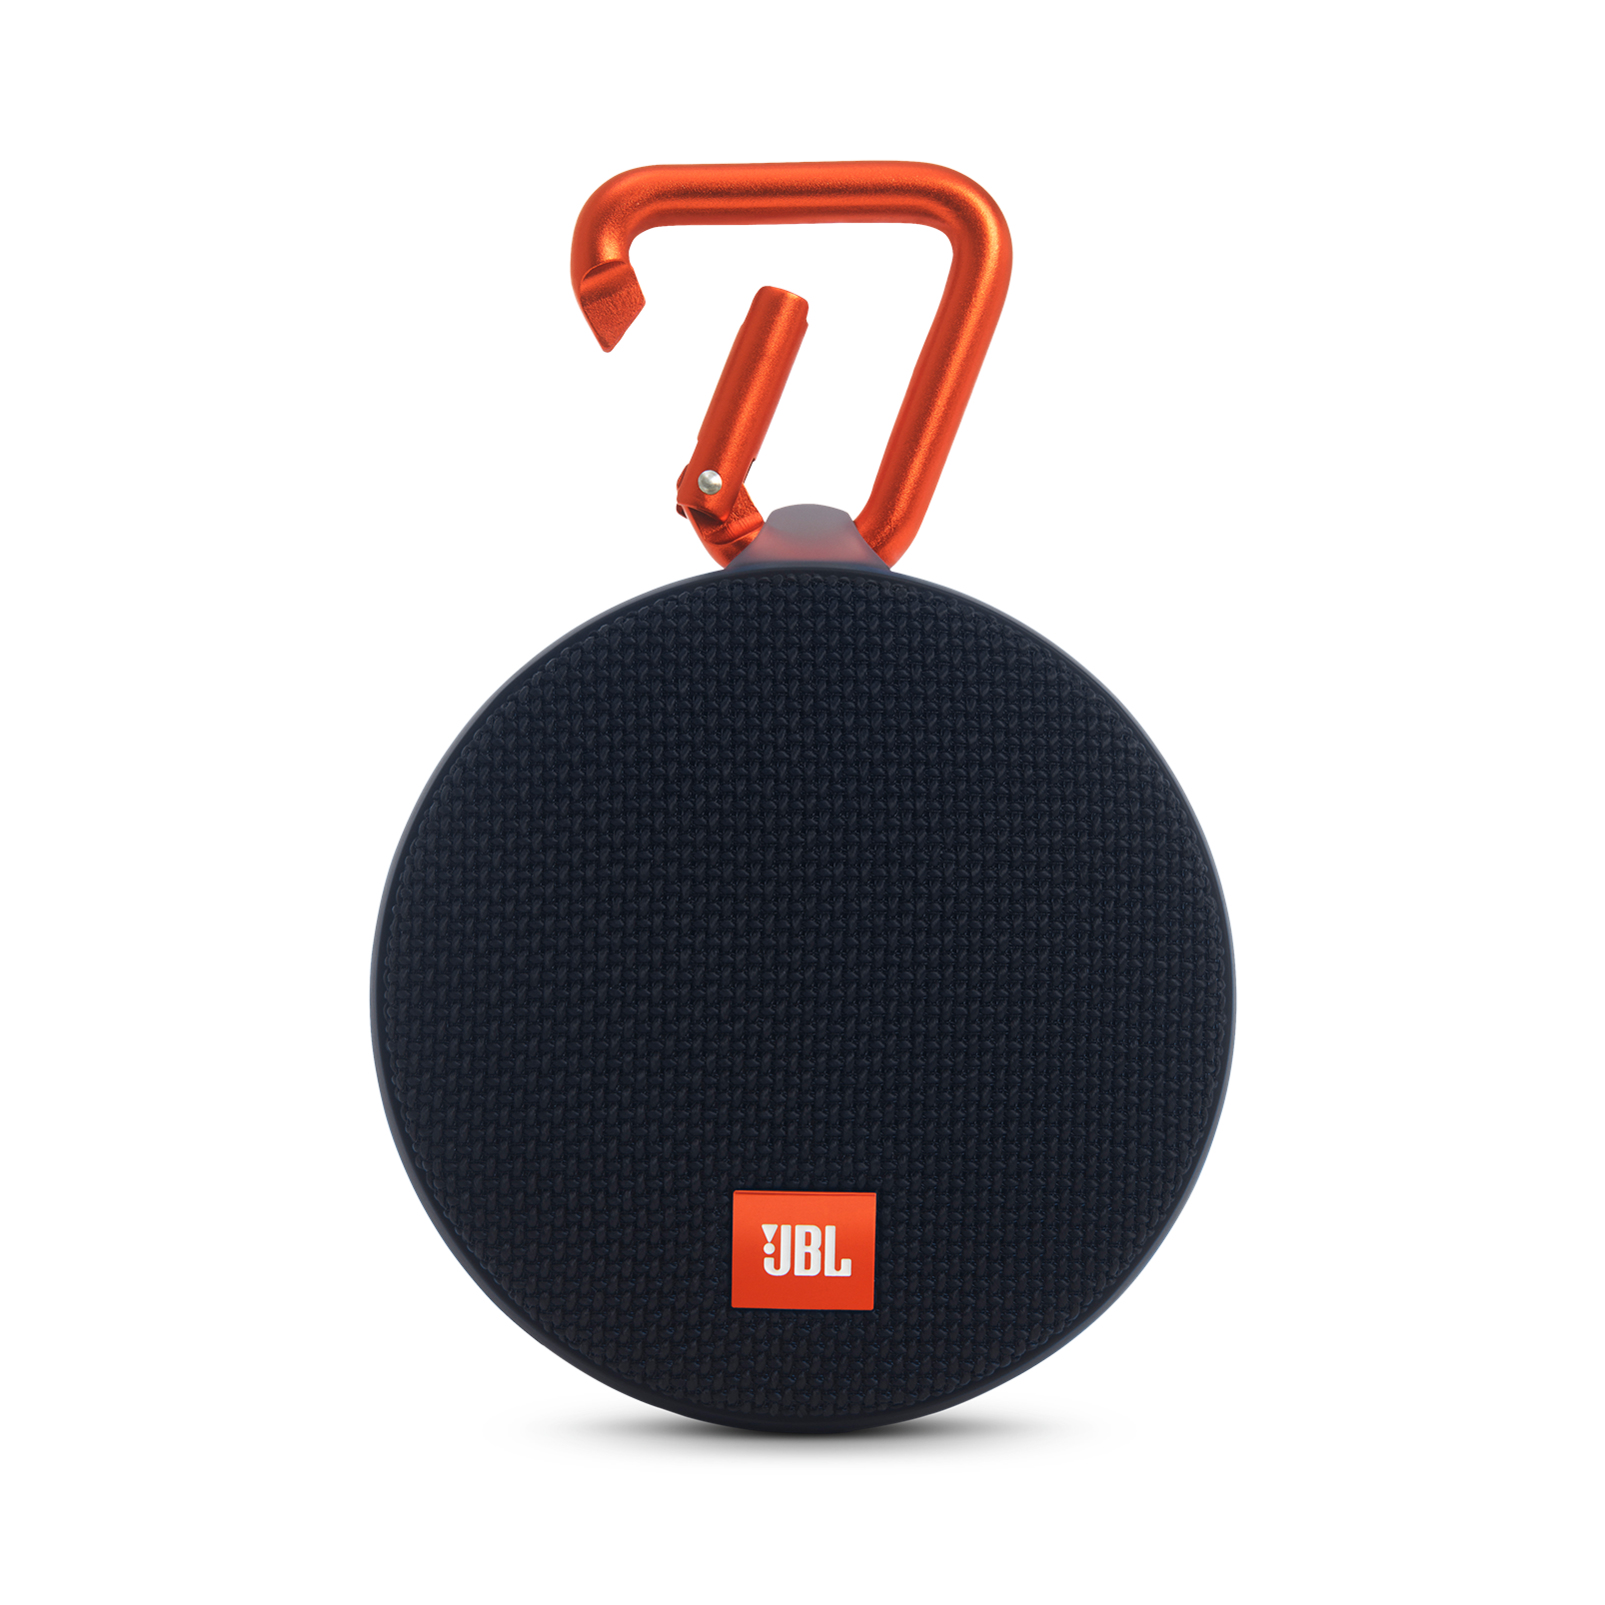 JBL CLIP 2 MONO PORTABLE SPEAKER 3W BLACK,ORANGE